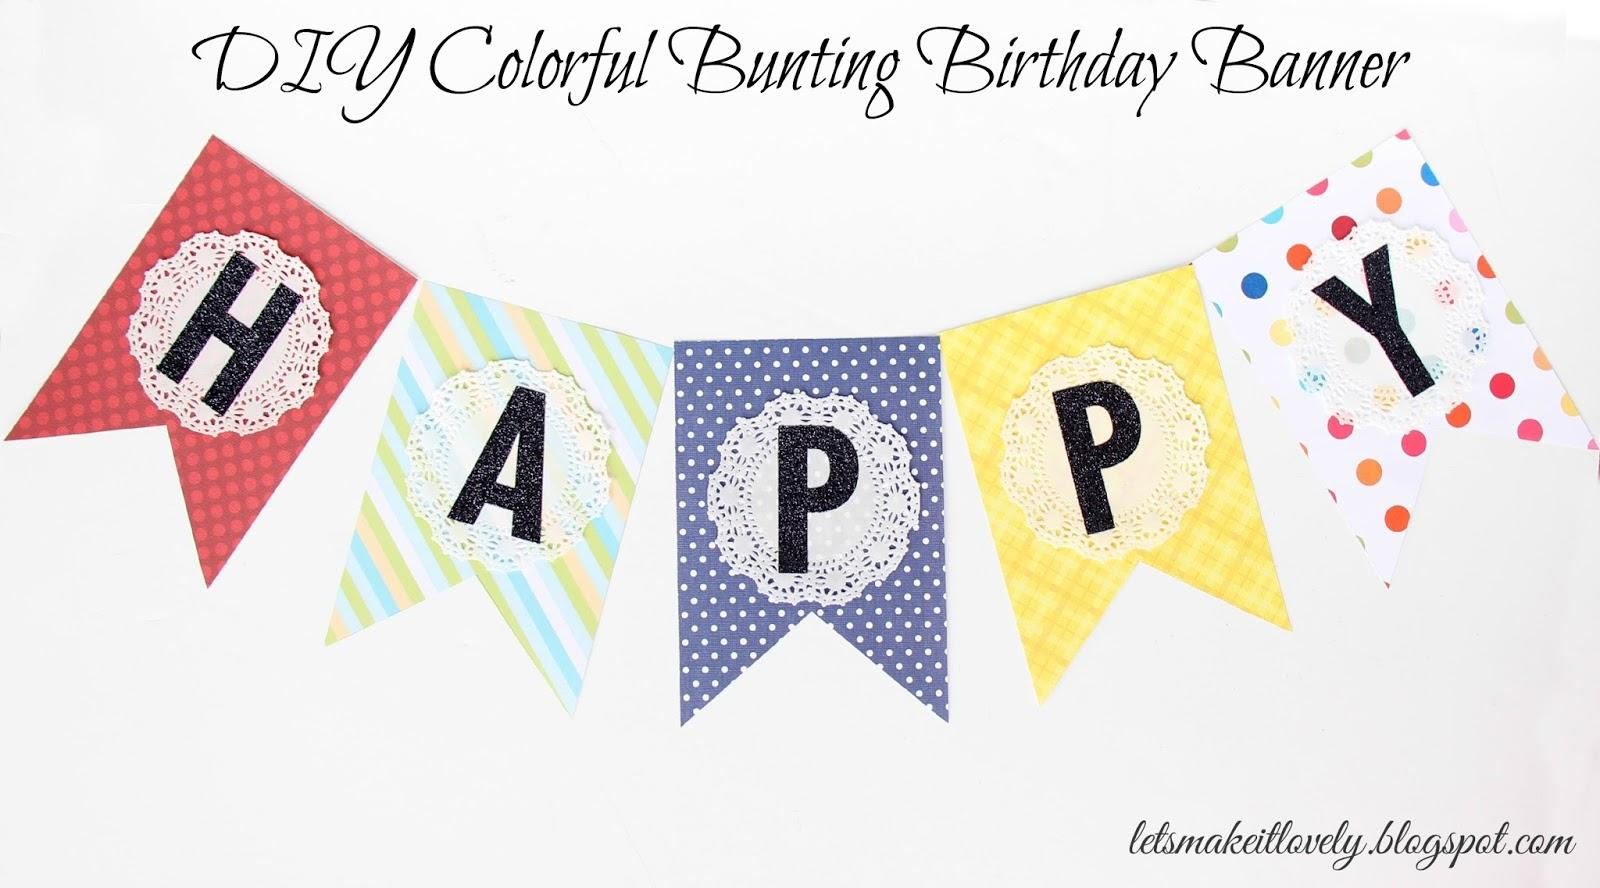 27 DIY Colorful Bunting Birthday Banner